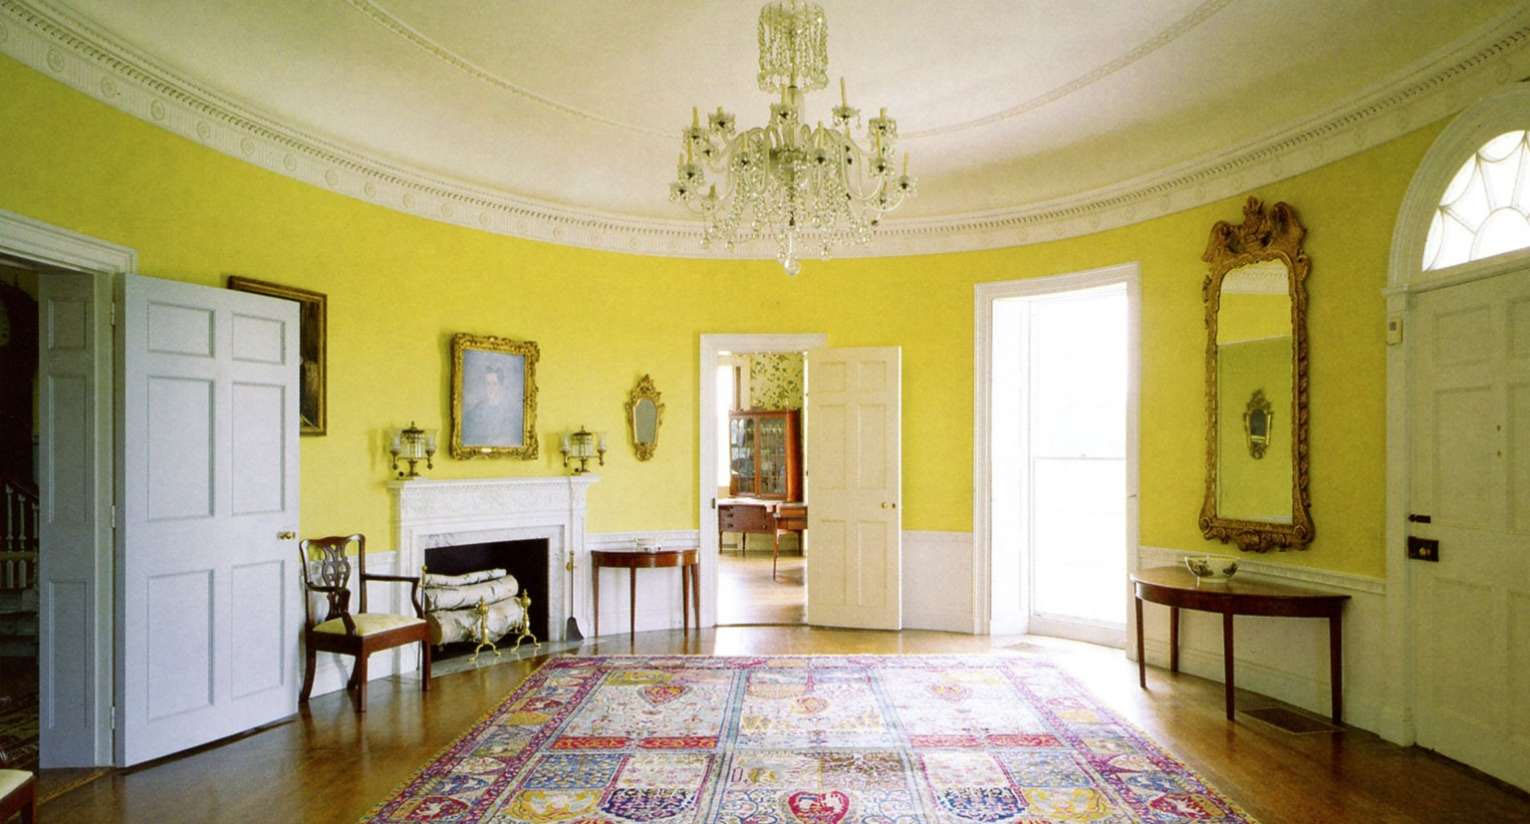 View picture of general henry knox museum montpelier thomaston - Contact Us Online